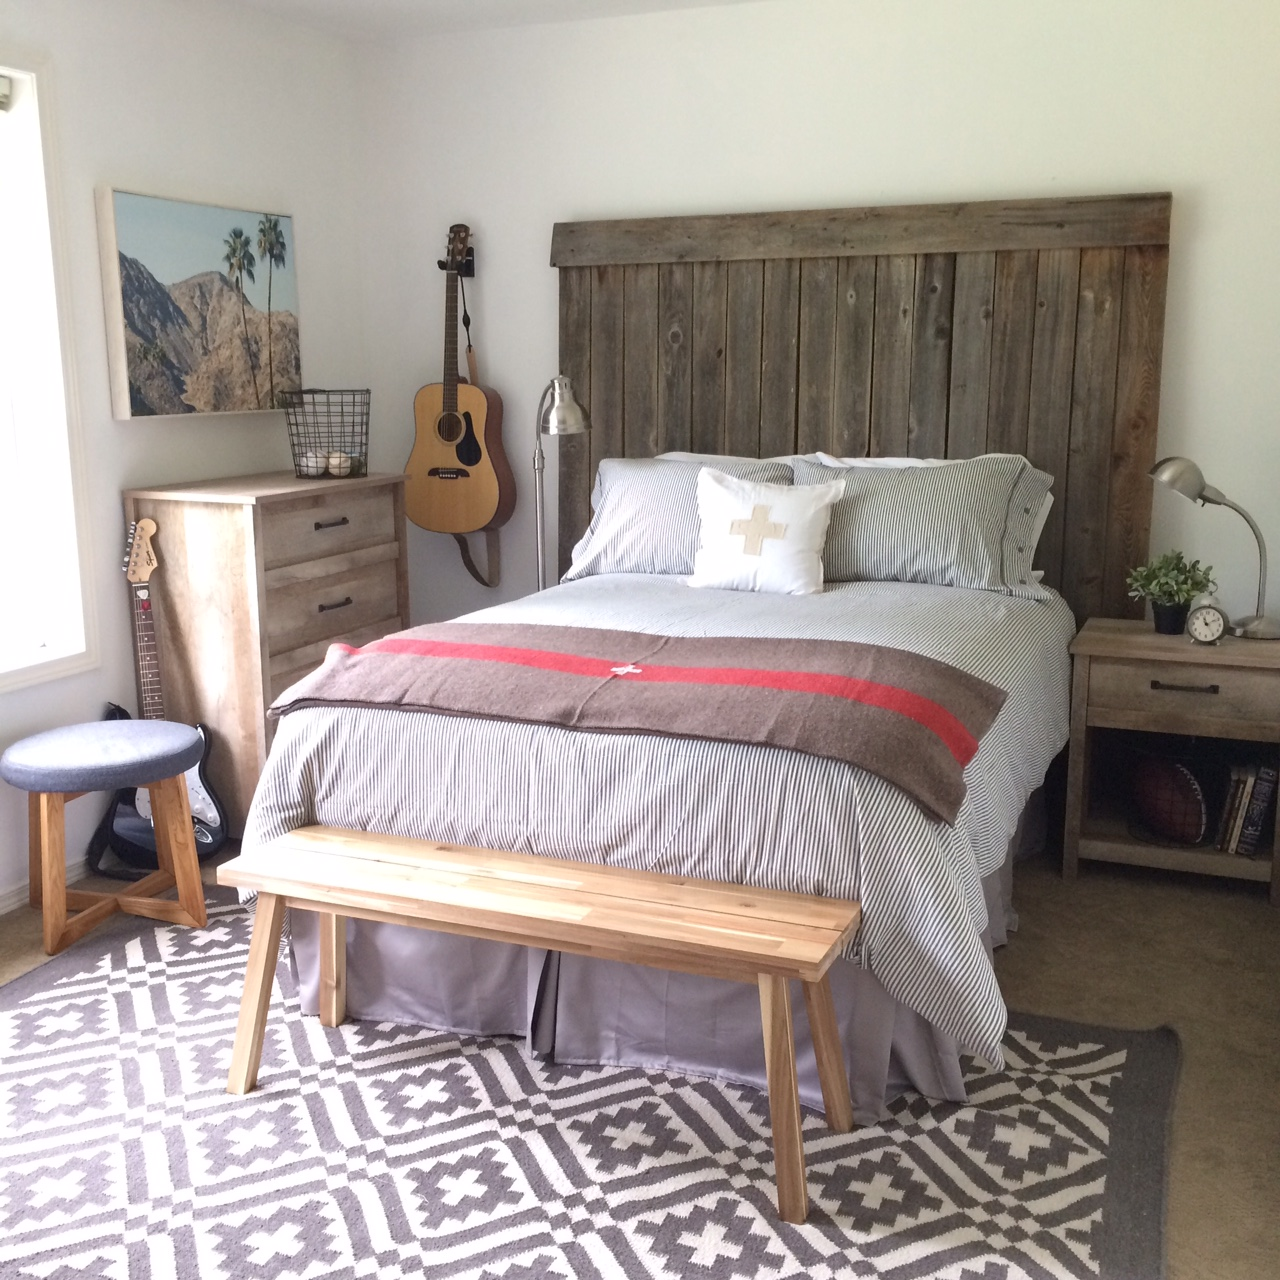 Boys Bedroom Makeover: Little Farmstead: Tween / Teen Boy's Bedroom Makeover